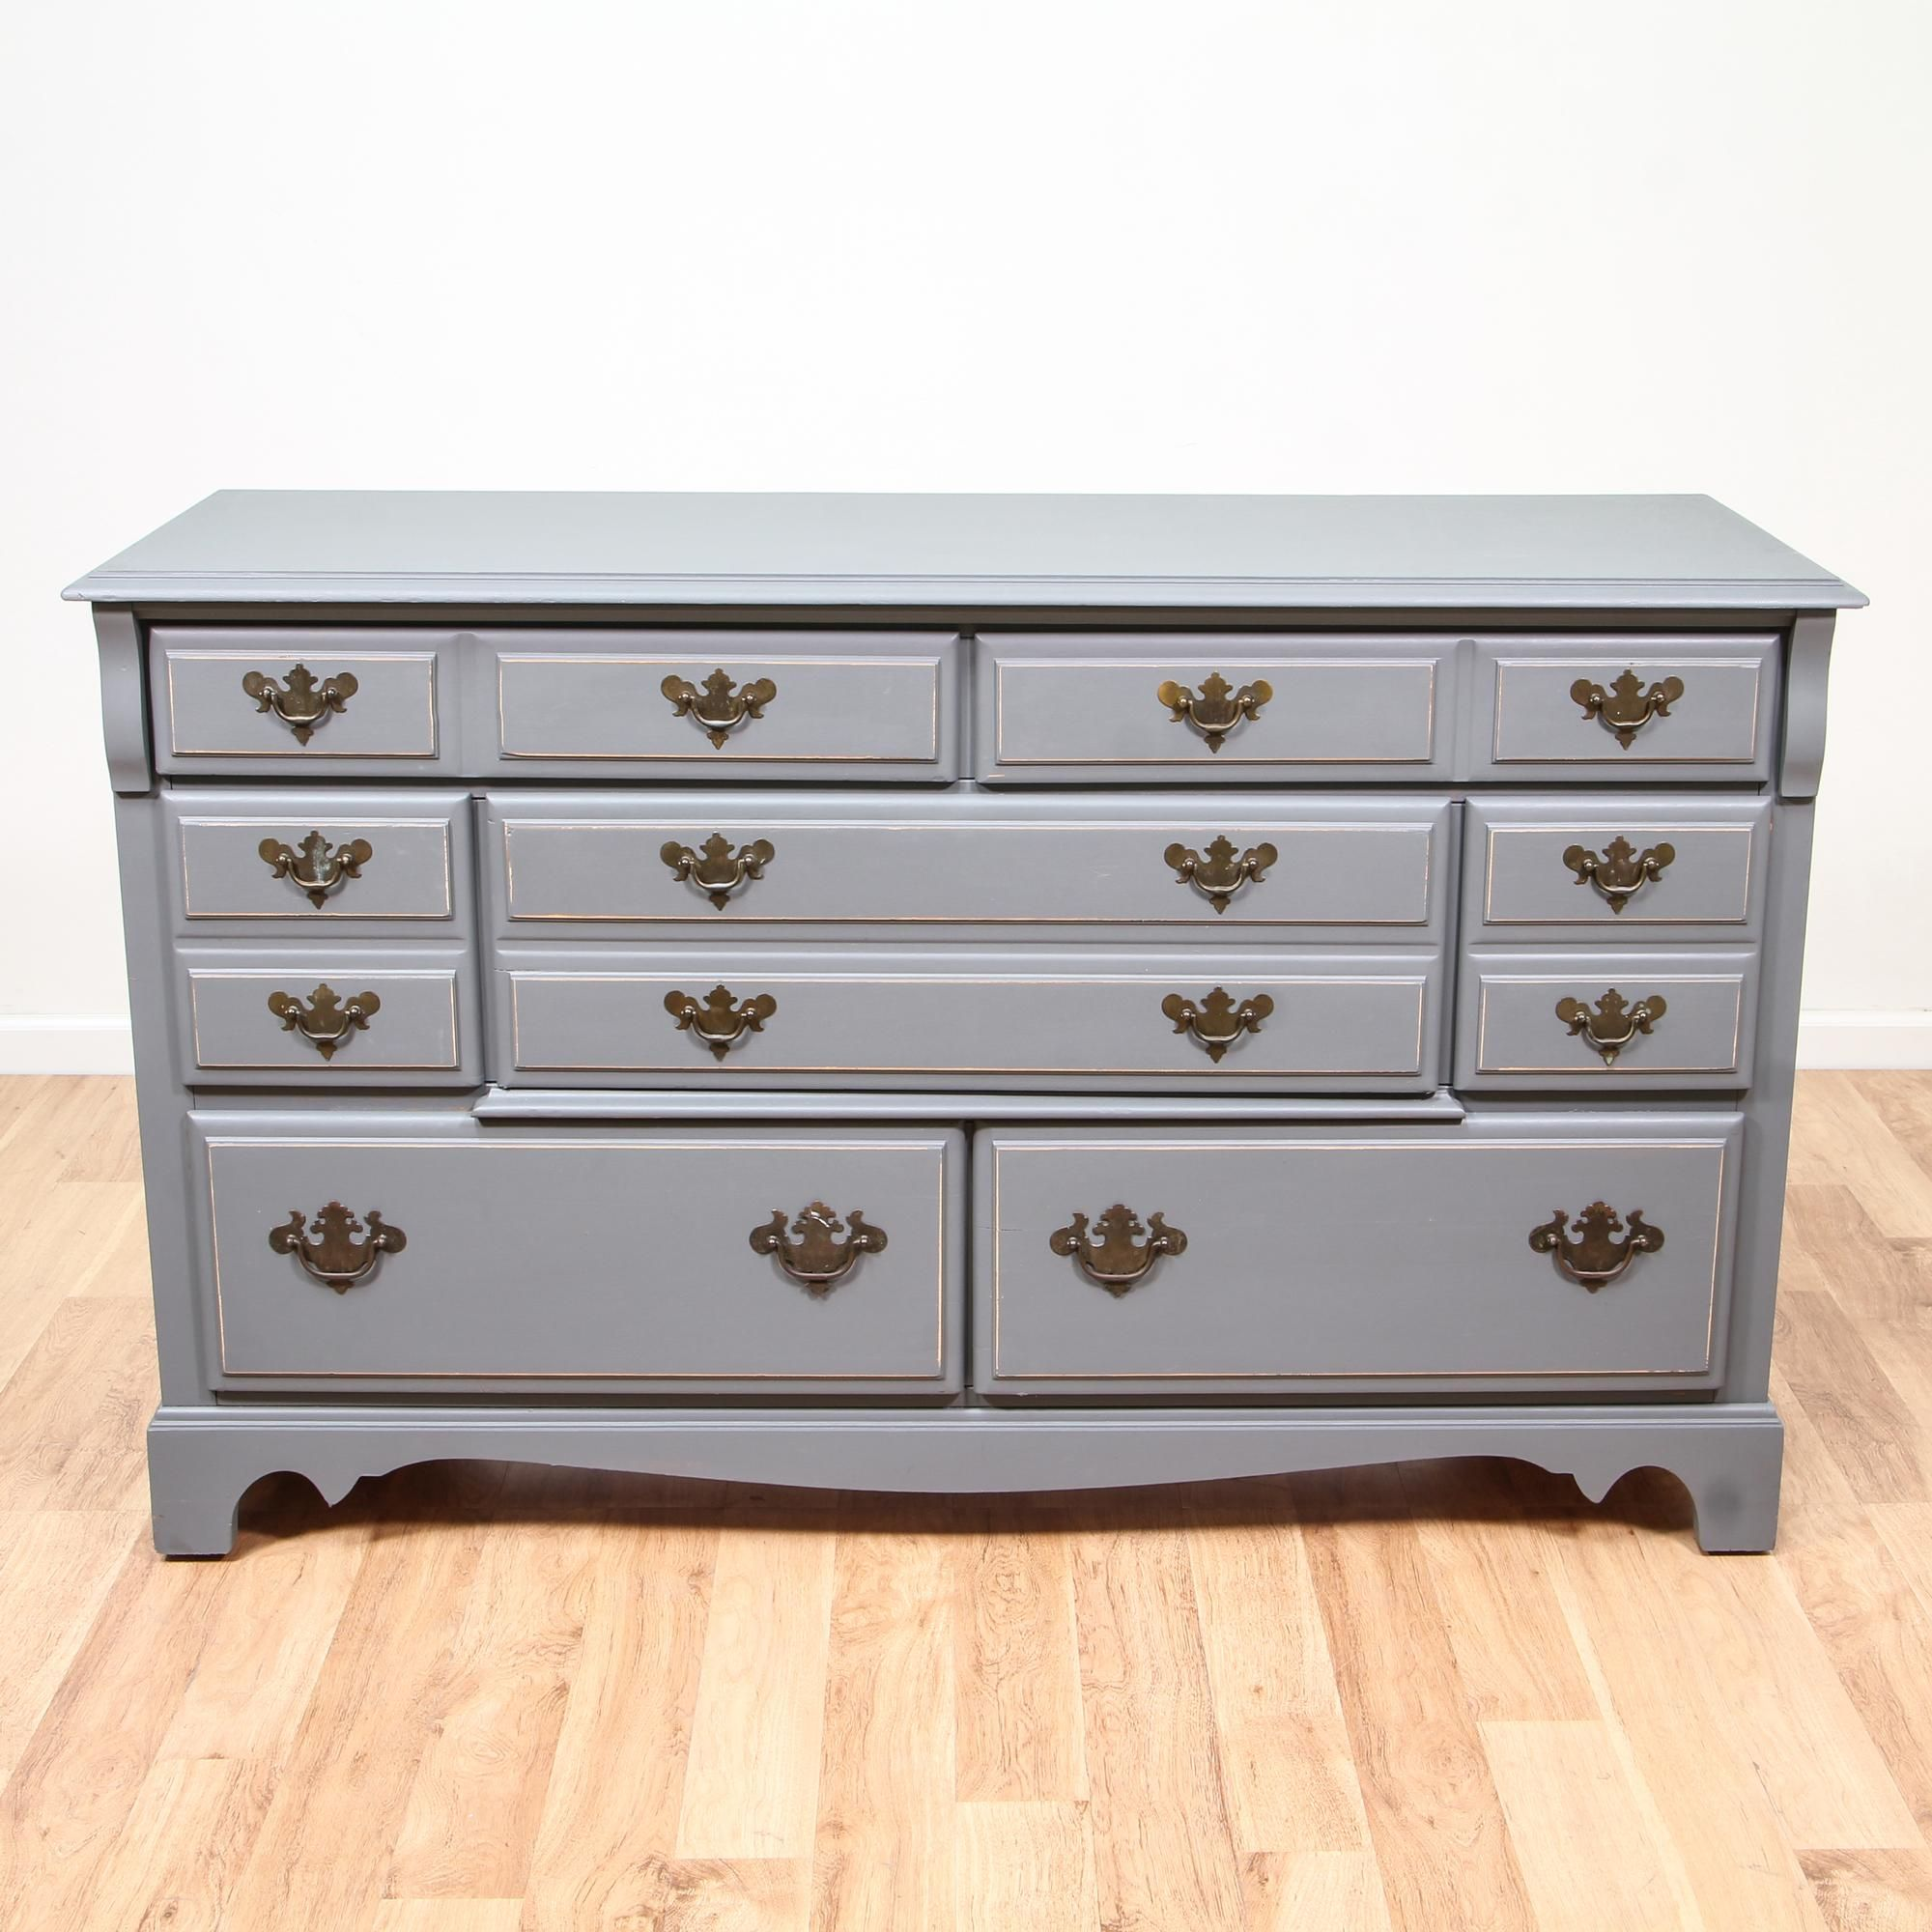 This shabby chic dresser is featured in a solid wood with a